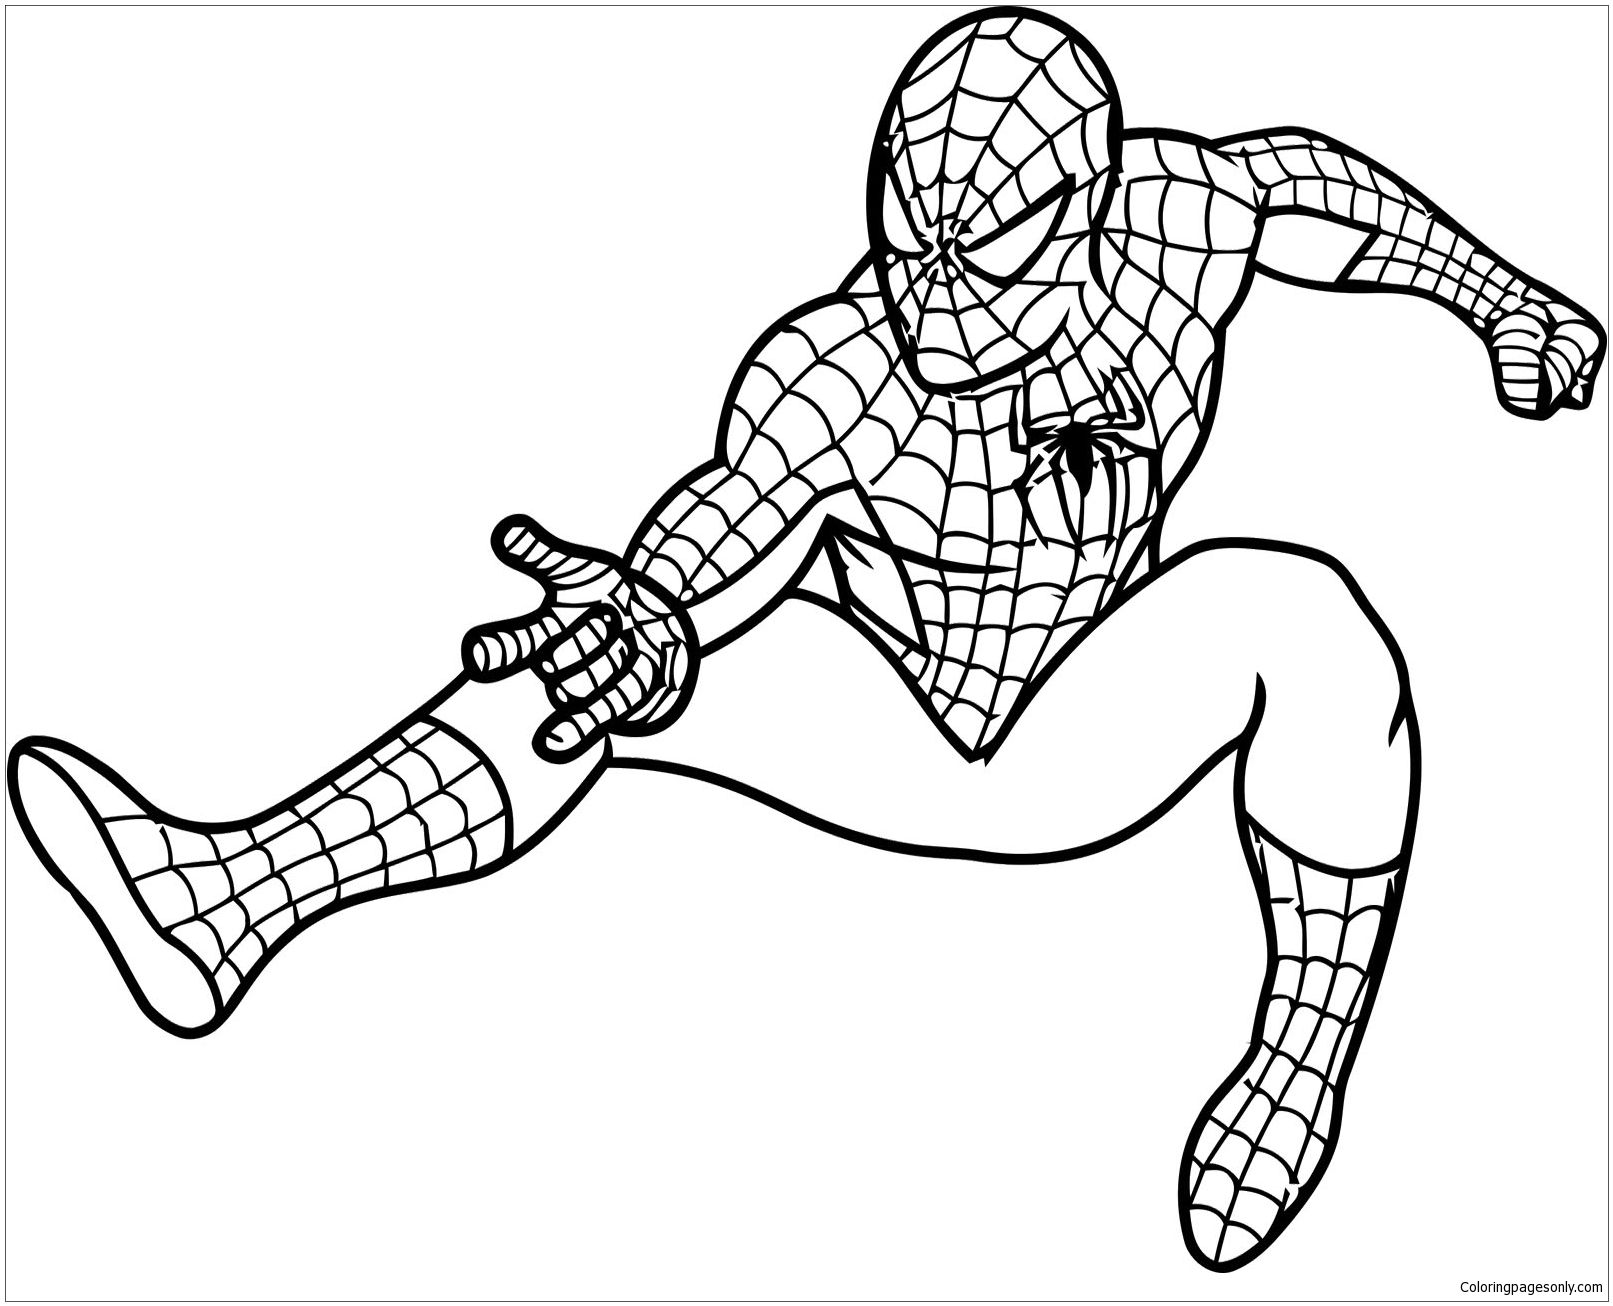 Epic Spider Man Coloring Page Turtle Coloring Pages Superhero Coloring Pages Lego Coloring Pages